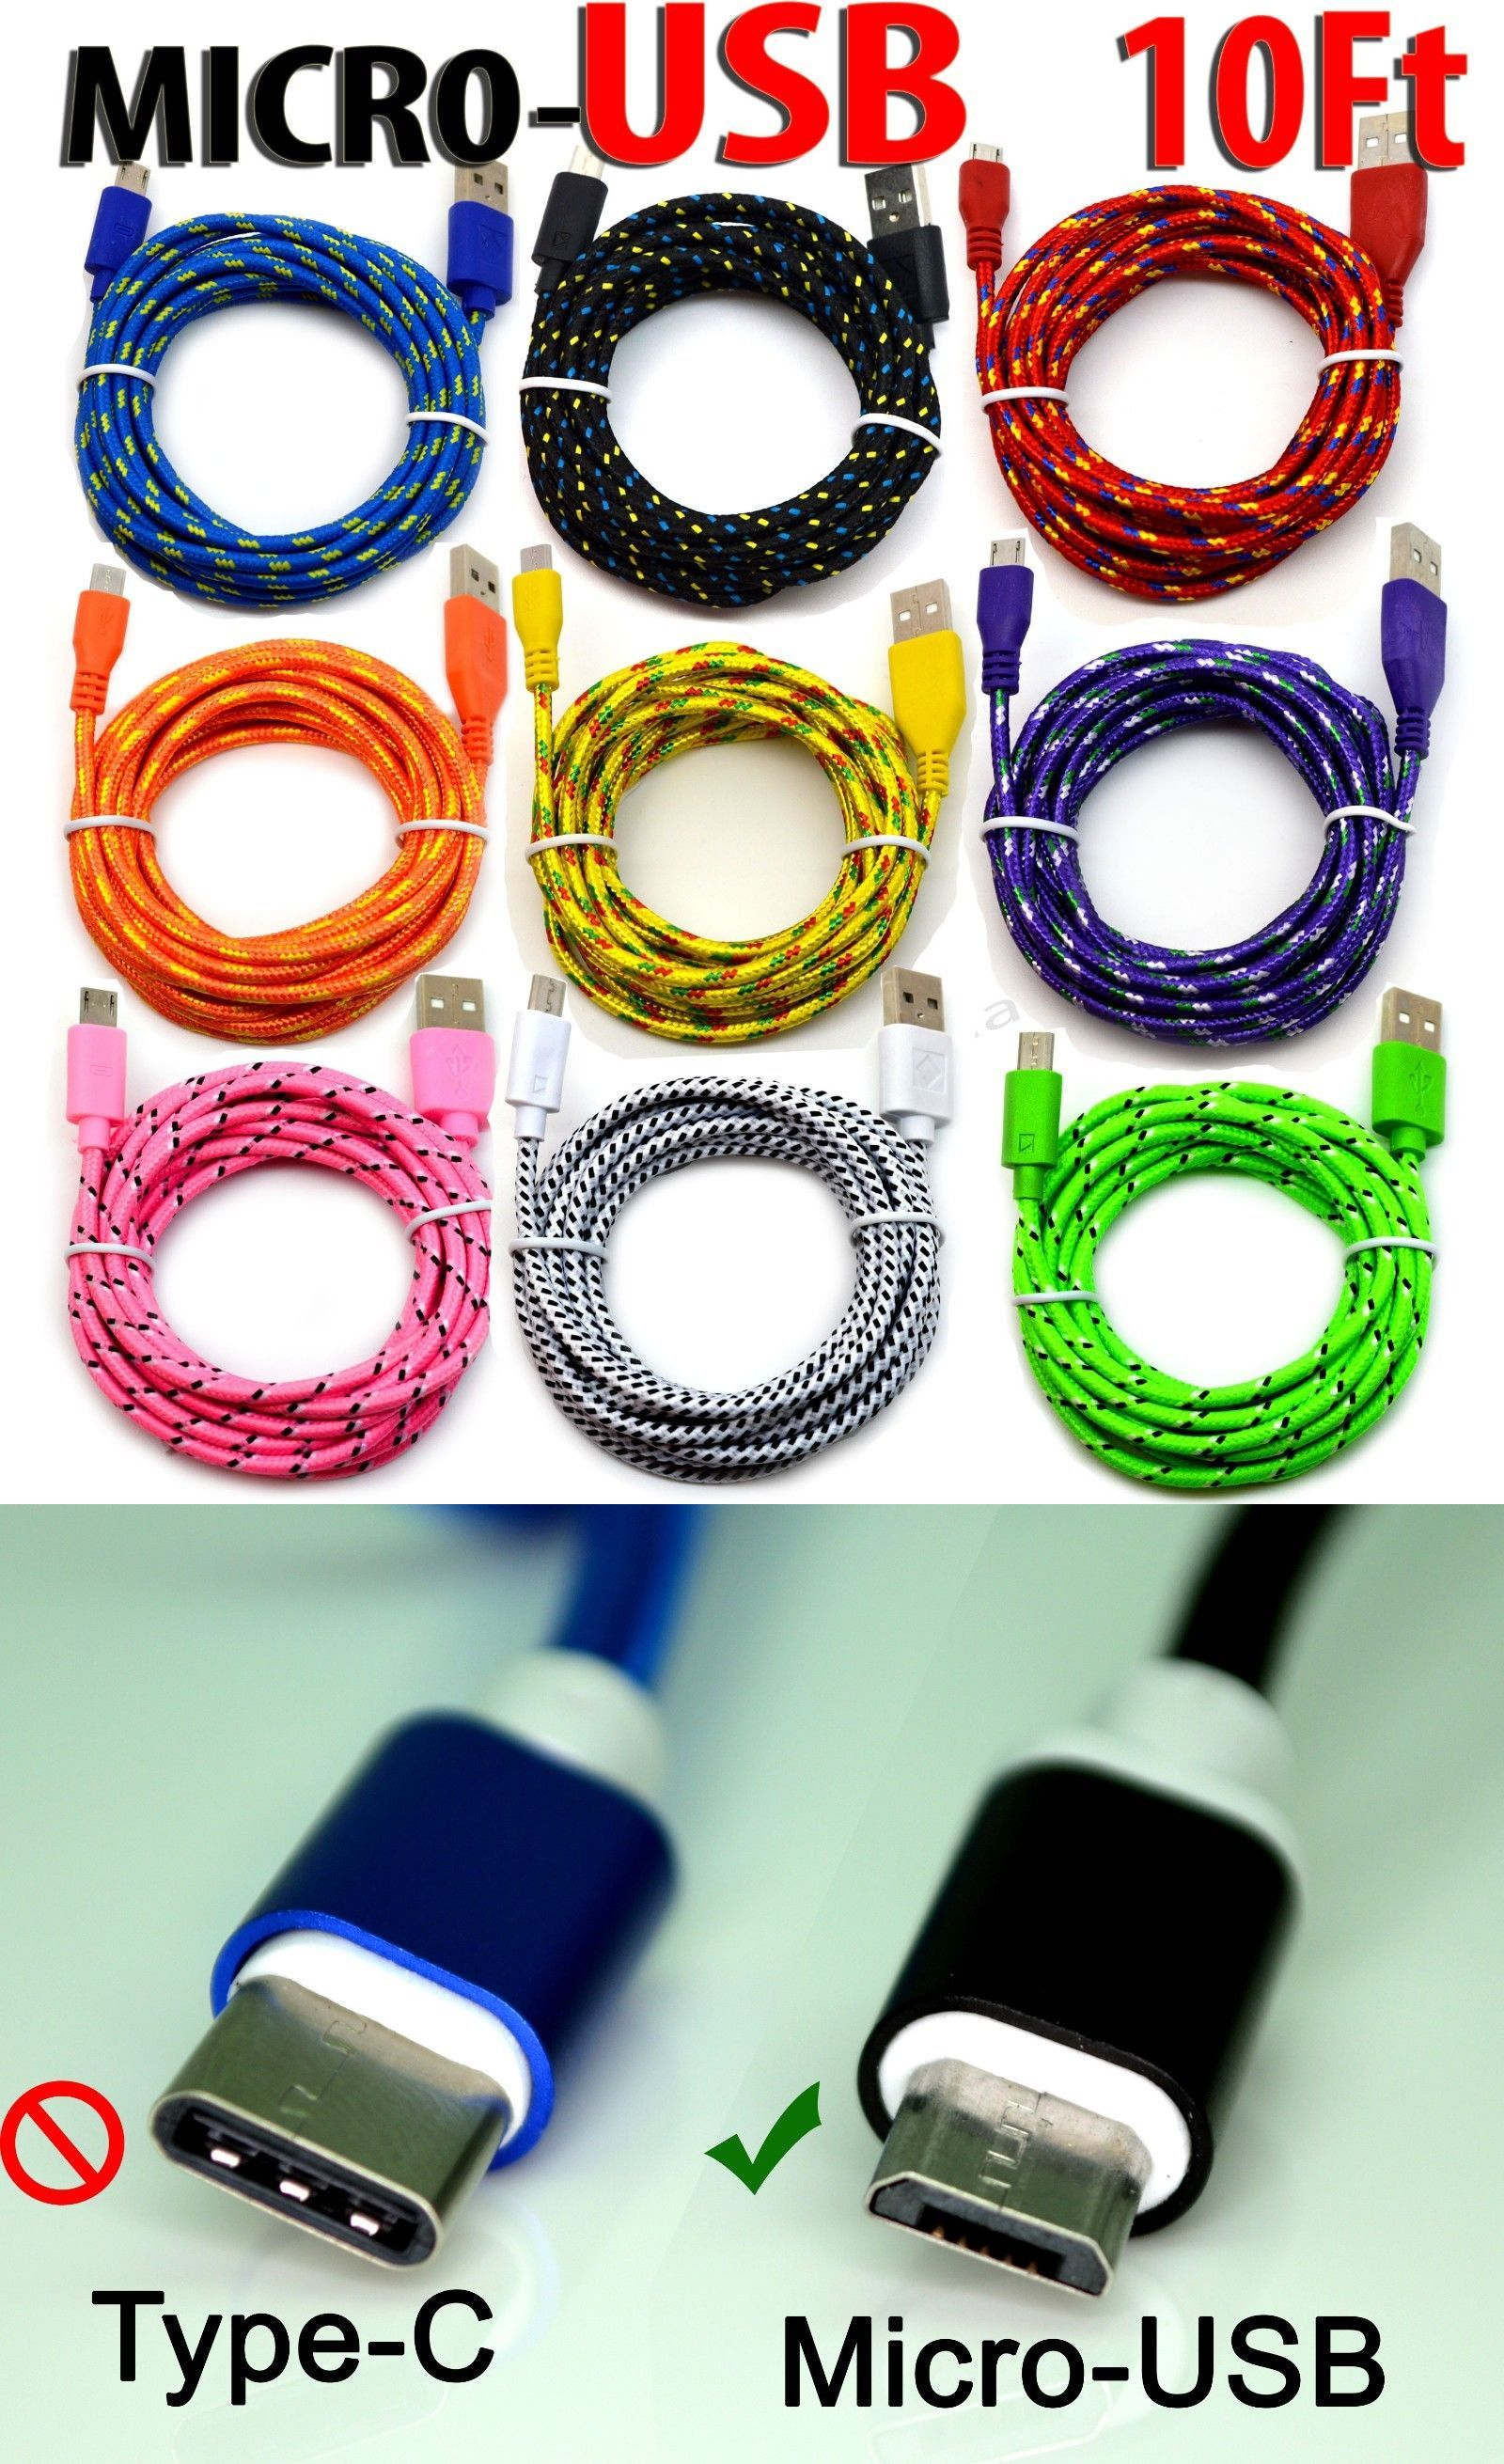 10 Foot Micro Usb 2 0 Cable For Android Phones Charging Sync Charger Cord Lot Android Phone Phone Charging Charger Cord